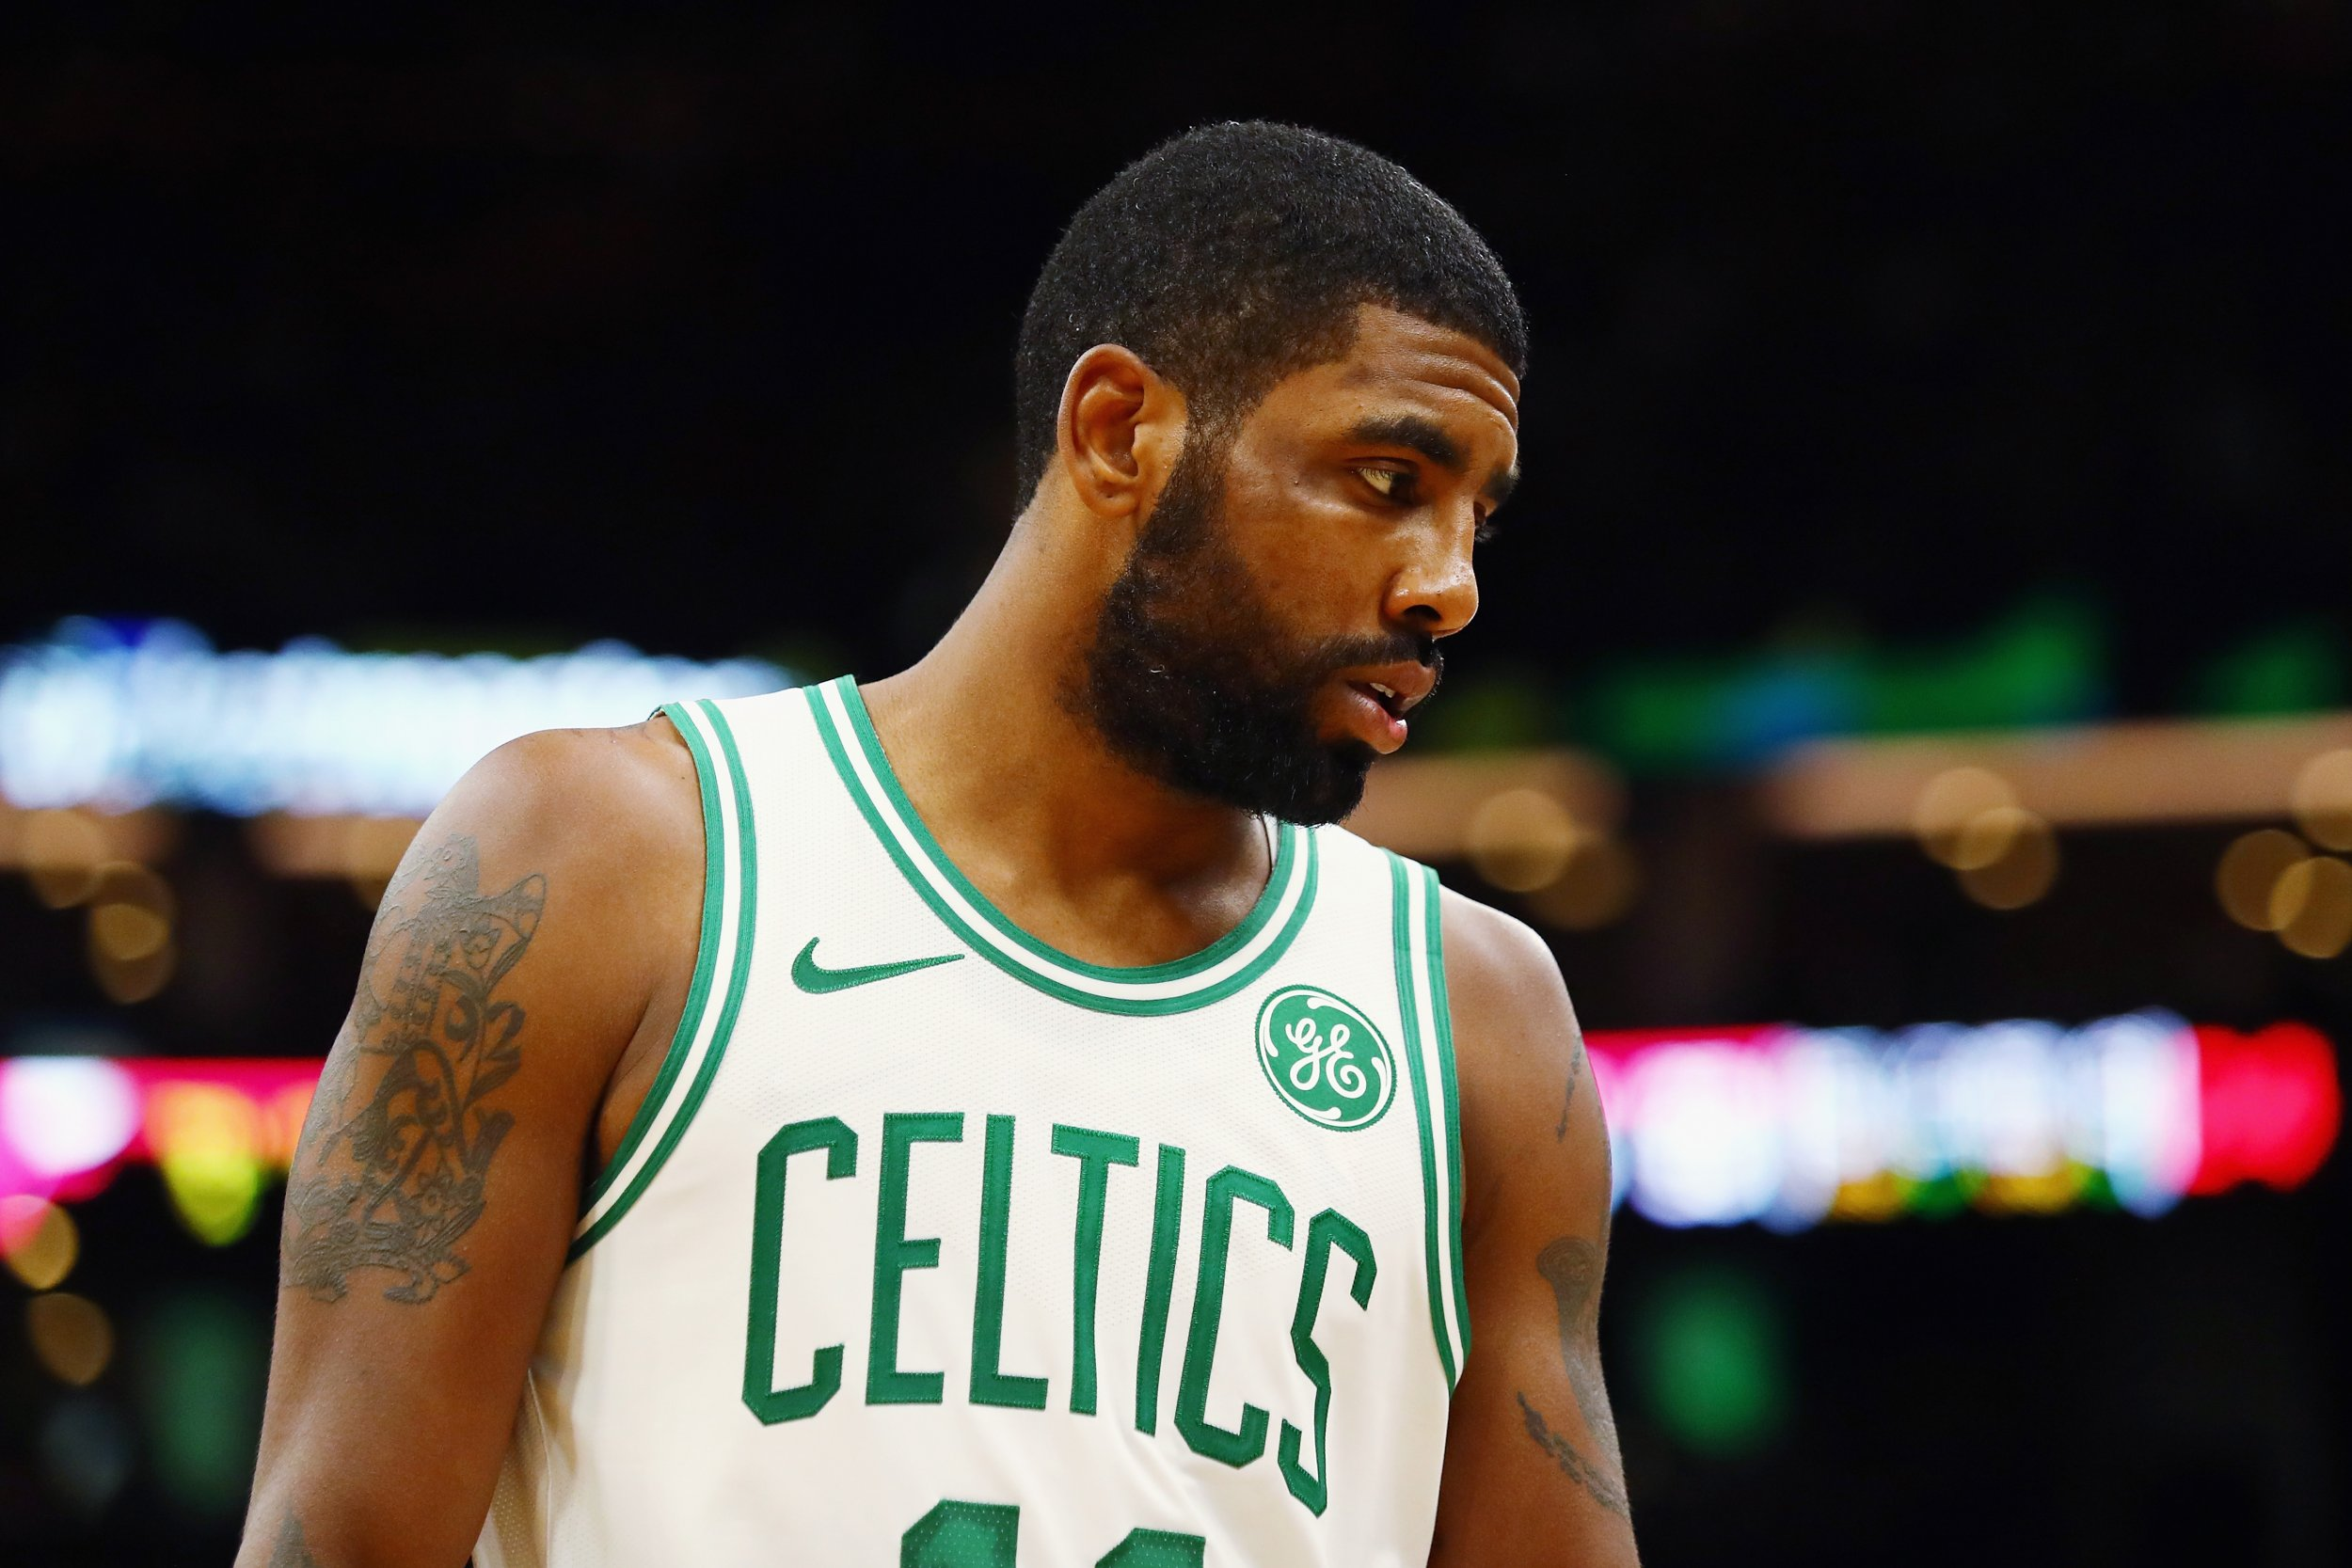 kyrie irving i meant no disrespect by f thanksgiving comment